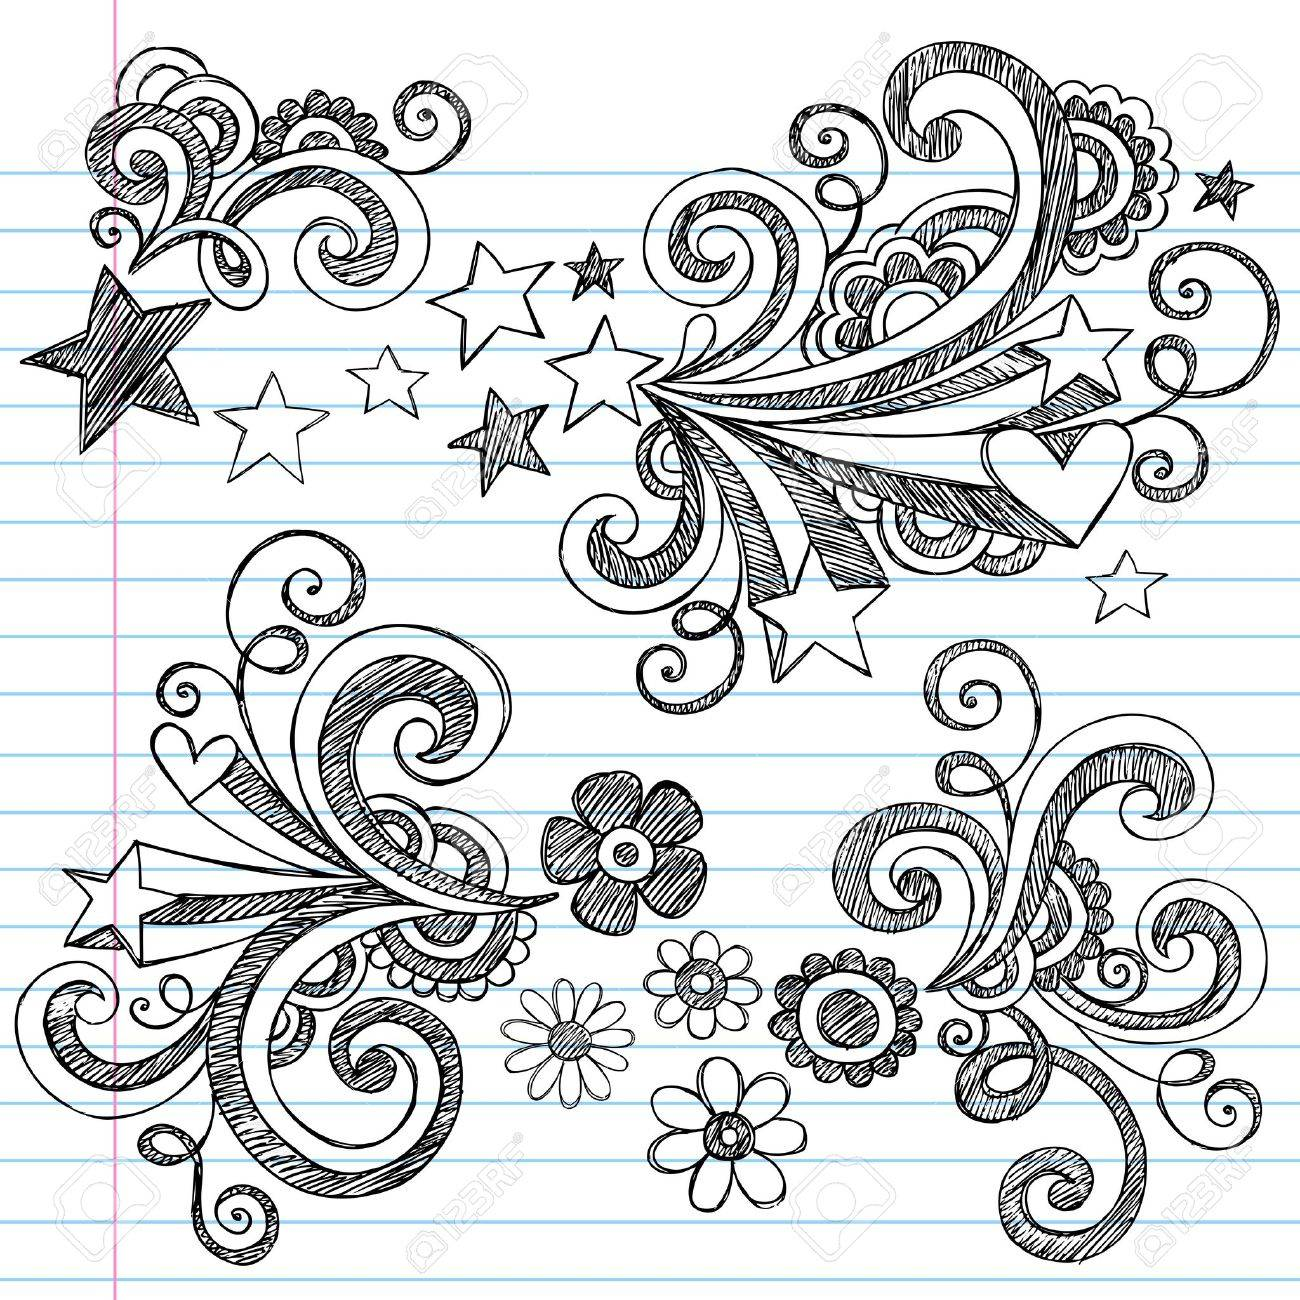 Hand-Drawn Back to School Stars and Flowers Sketchy Notebook Doodles Illustration Design Elements on Lined Sketchbook Paper Background Stock Vector - 12004333